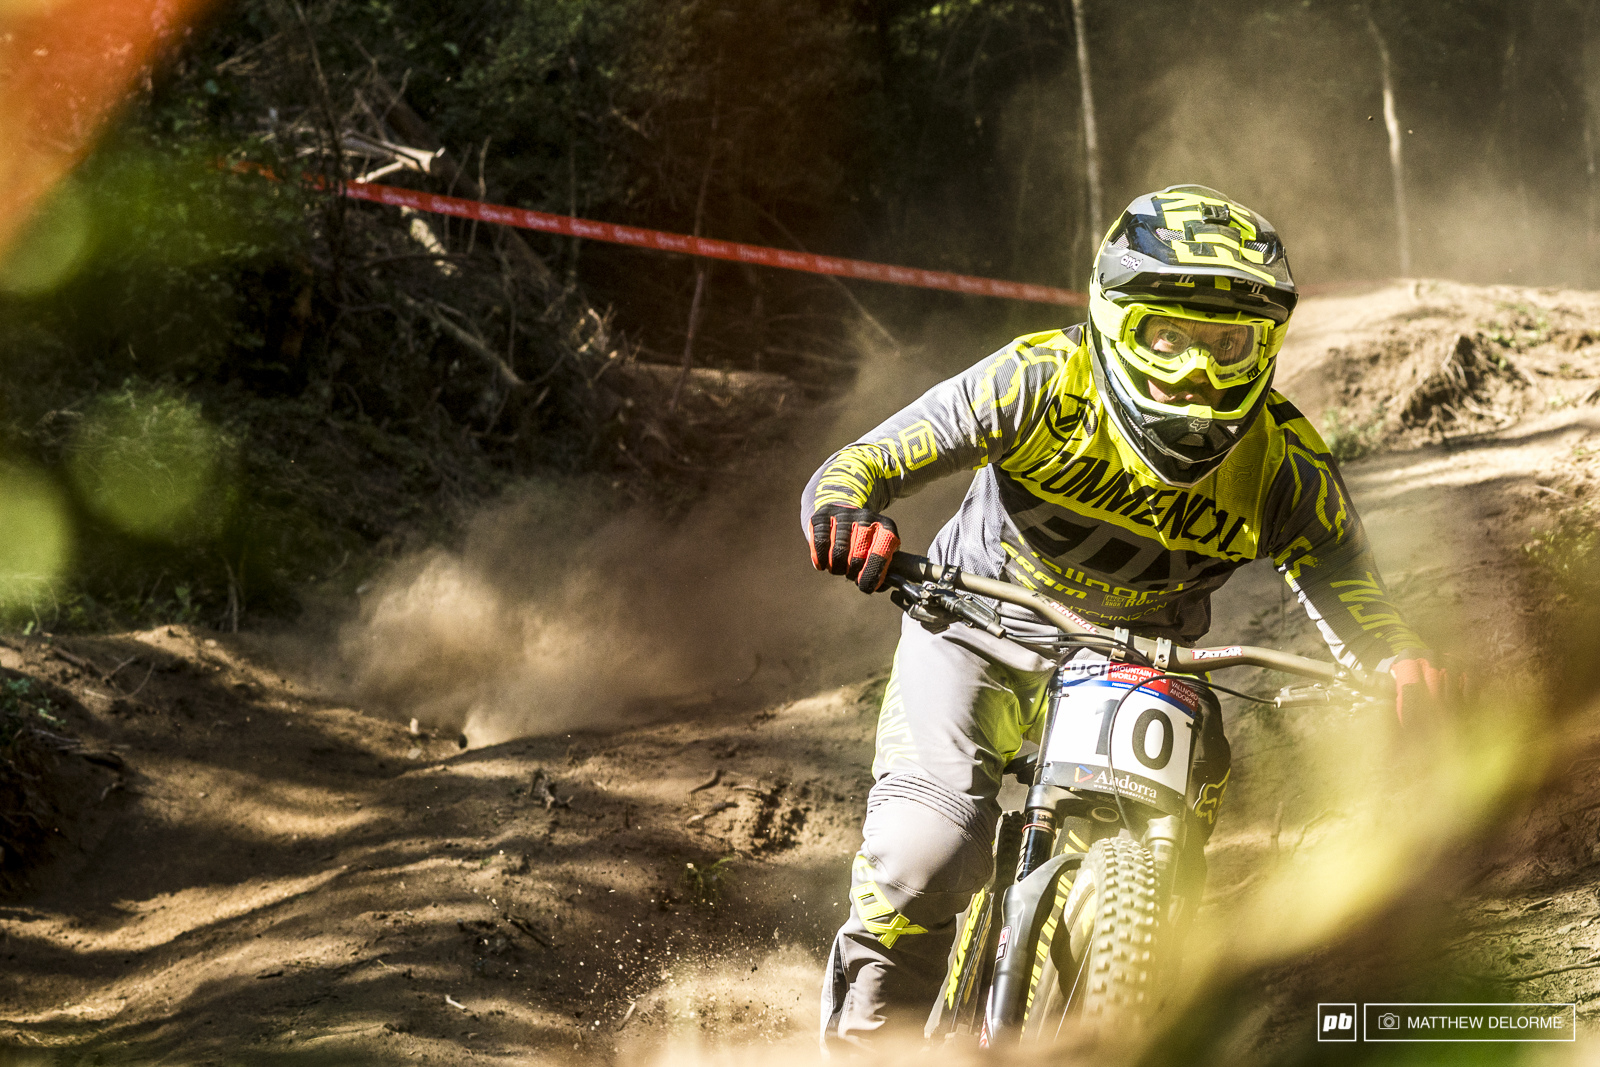 Remi Thirion wasn t able to keep it together in the rapidly changing conditions. He looked phenomenal in practice.